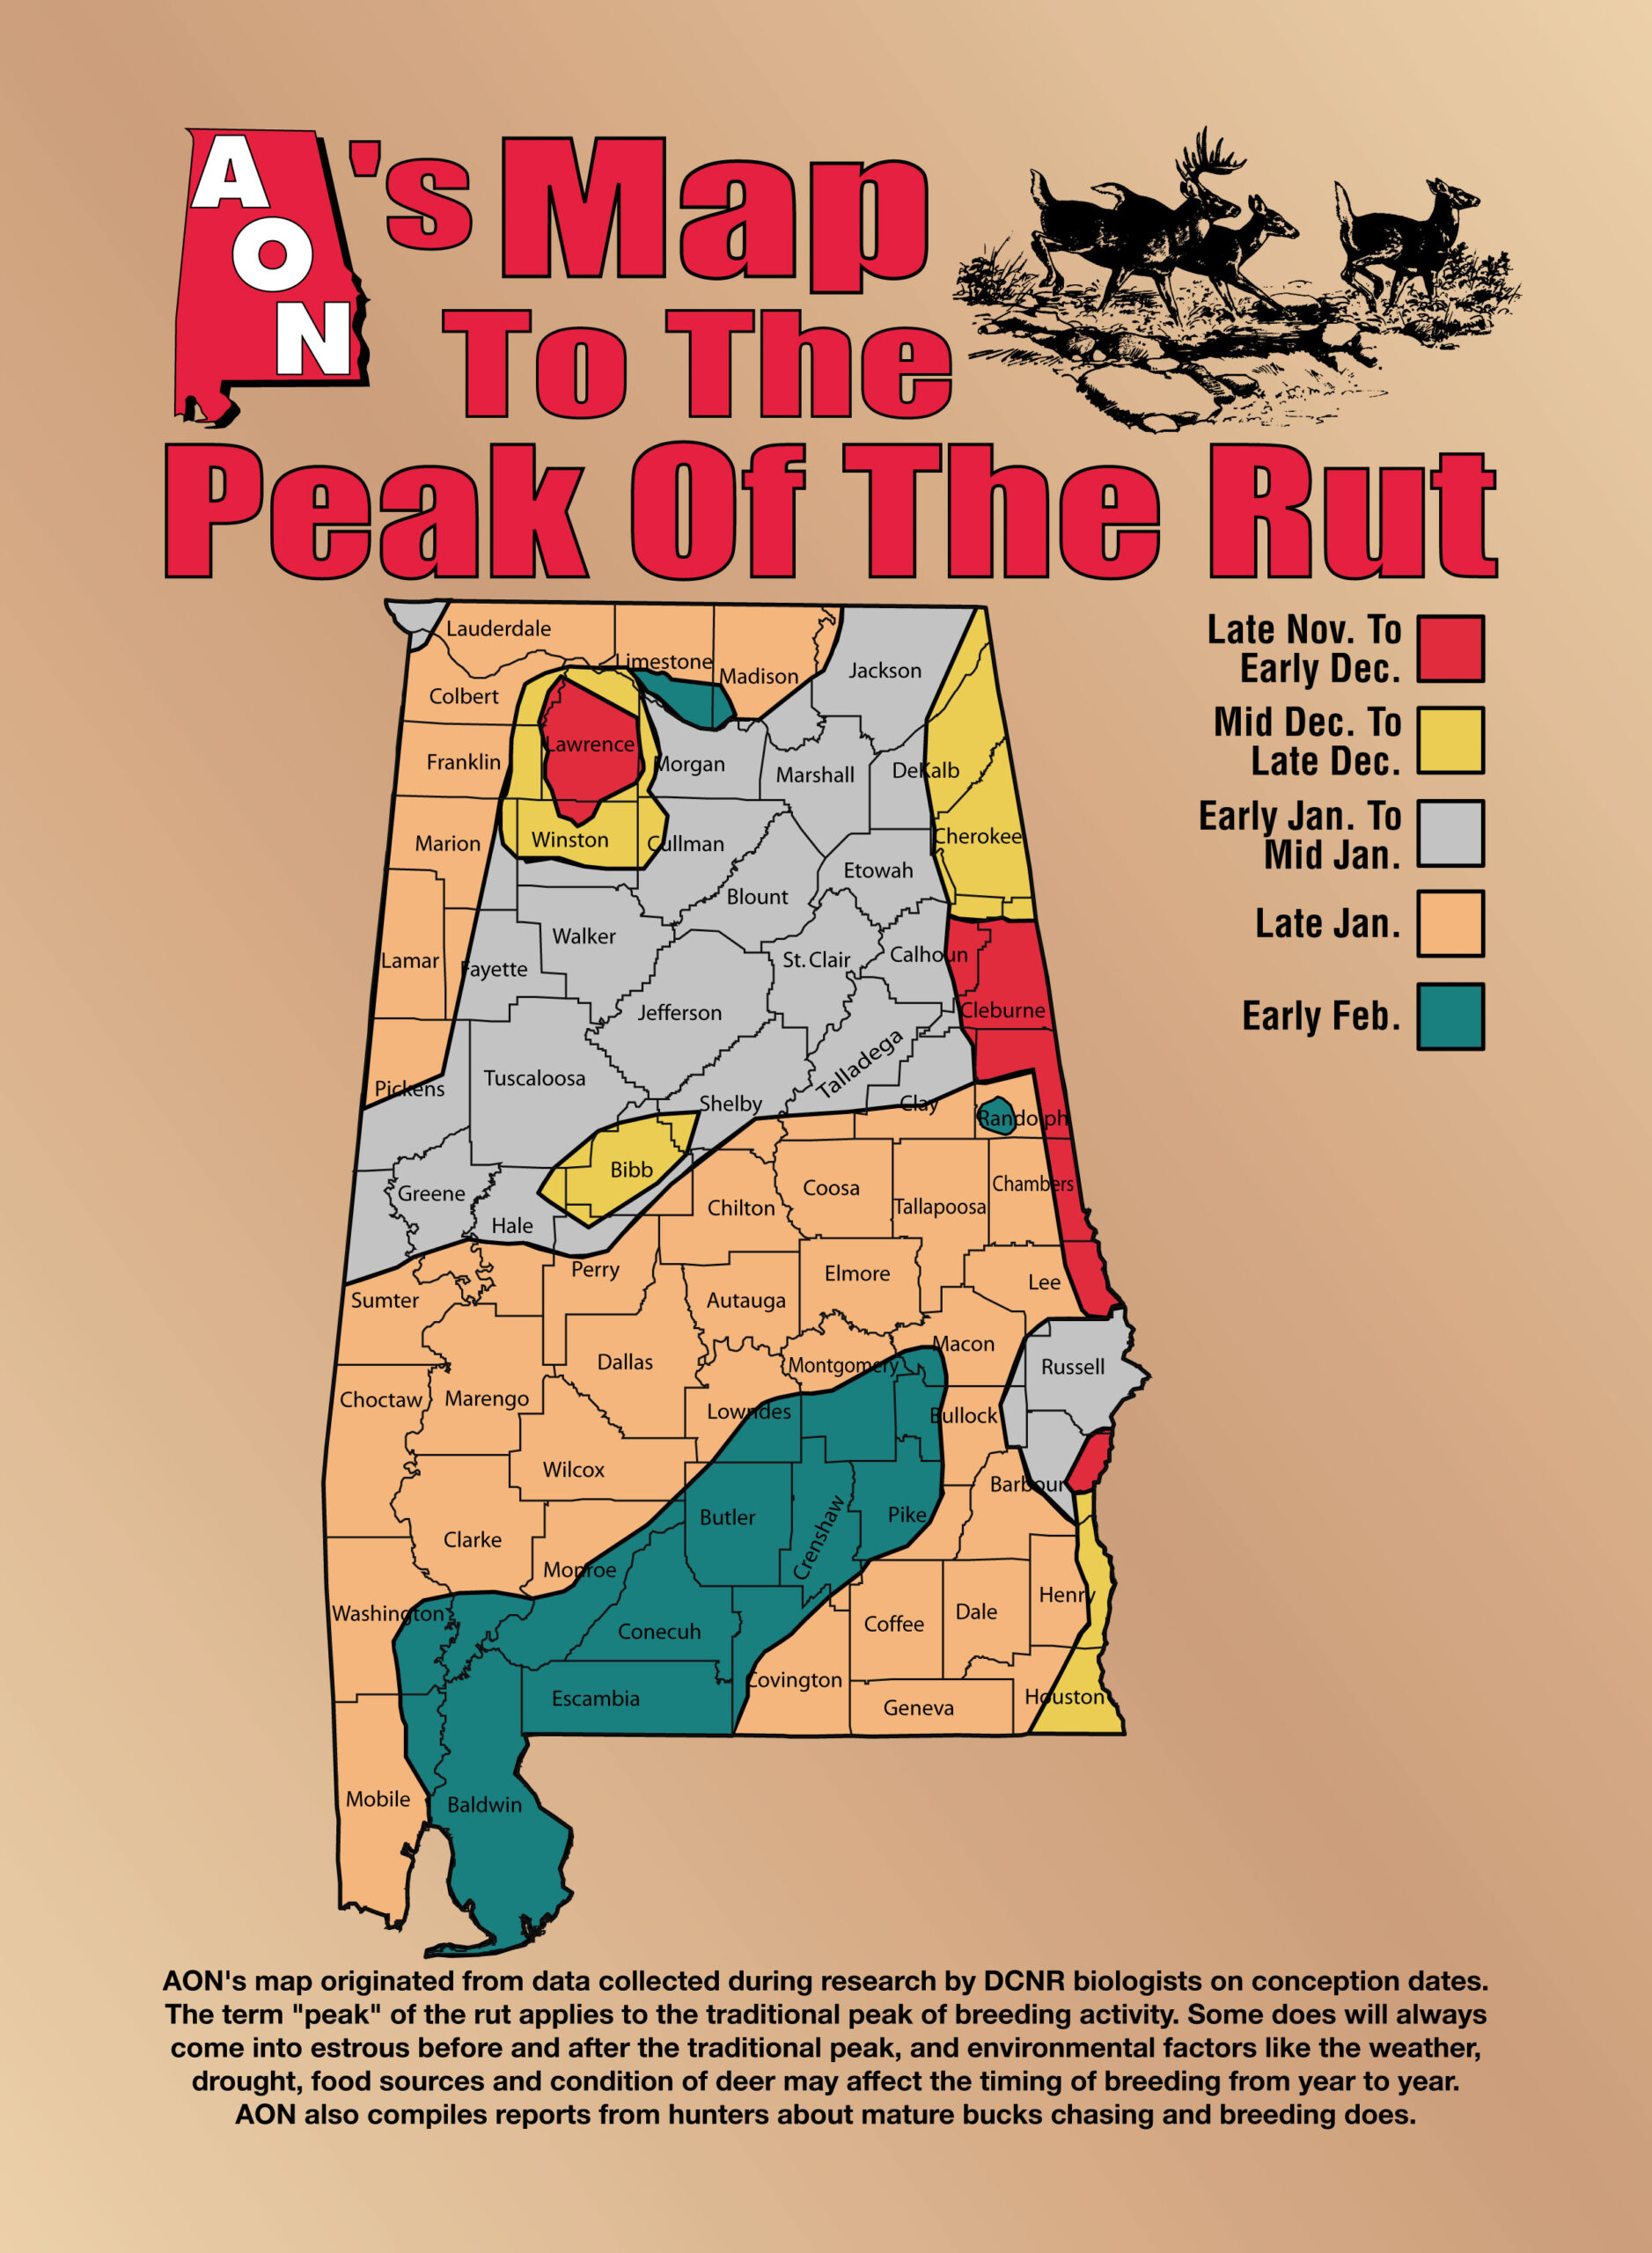 Decoding The Rut for Whitetail Deer Rut 2021